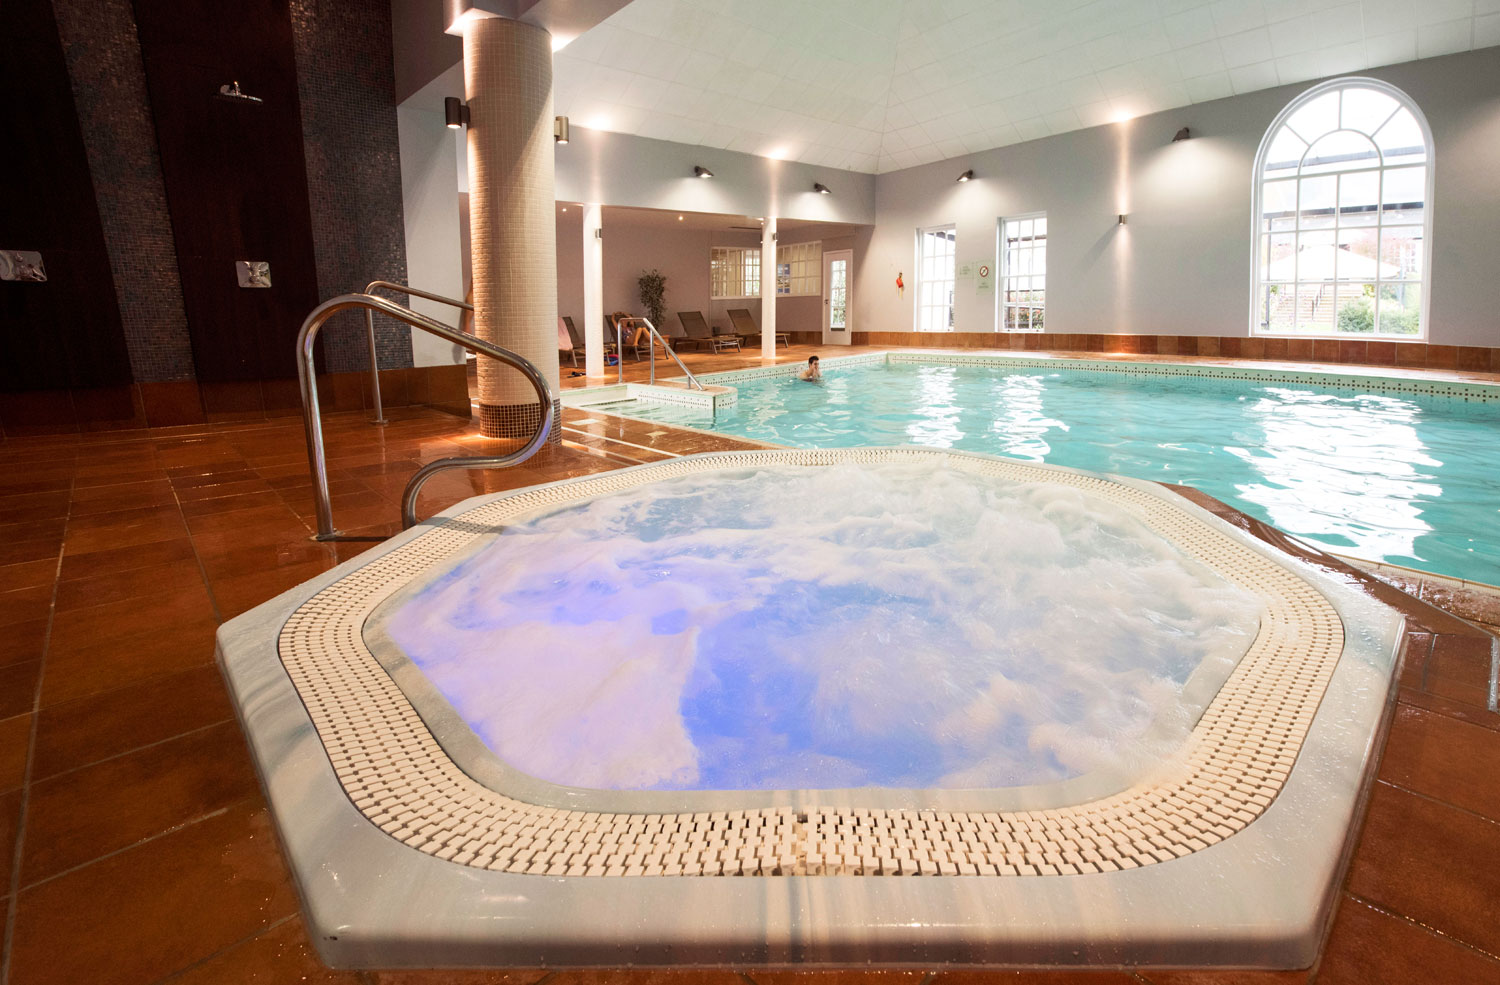 Relaxation Suffolk-Style at Bedford Lodge Hotel and Spa 8